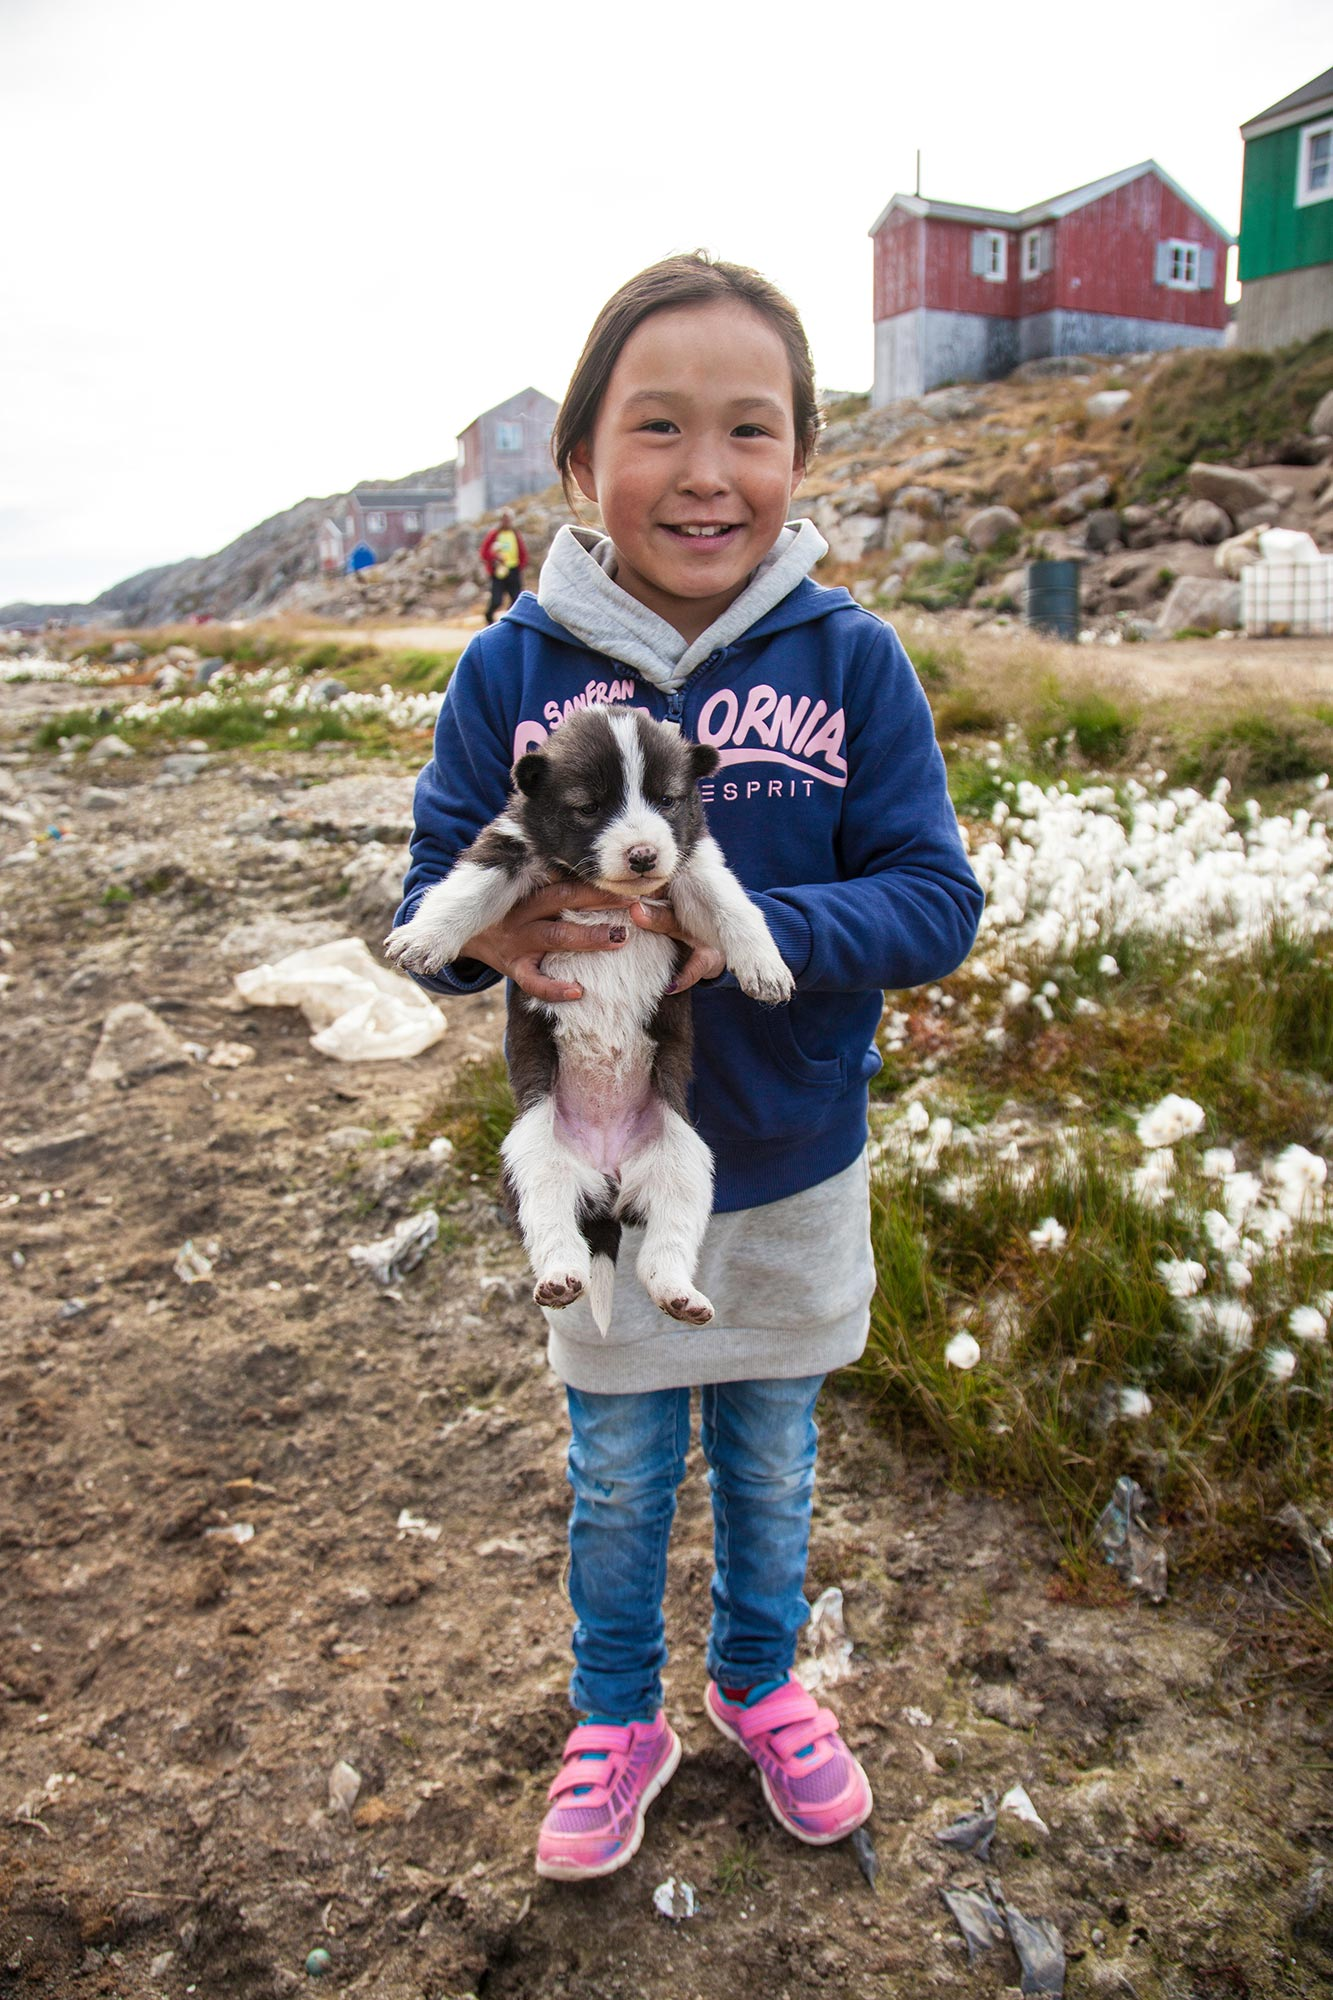 The Greenlandic Youth